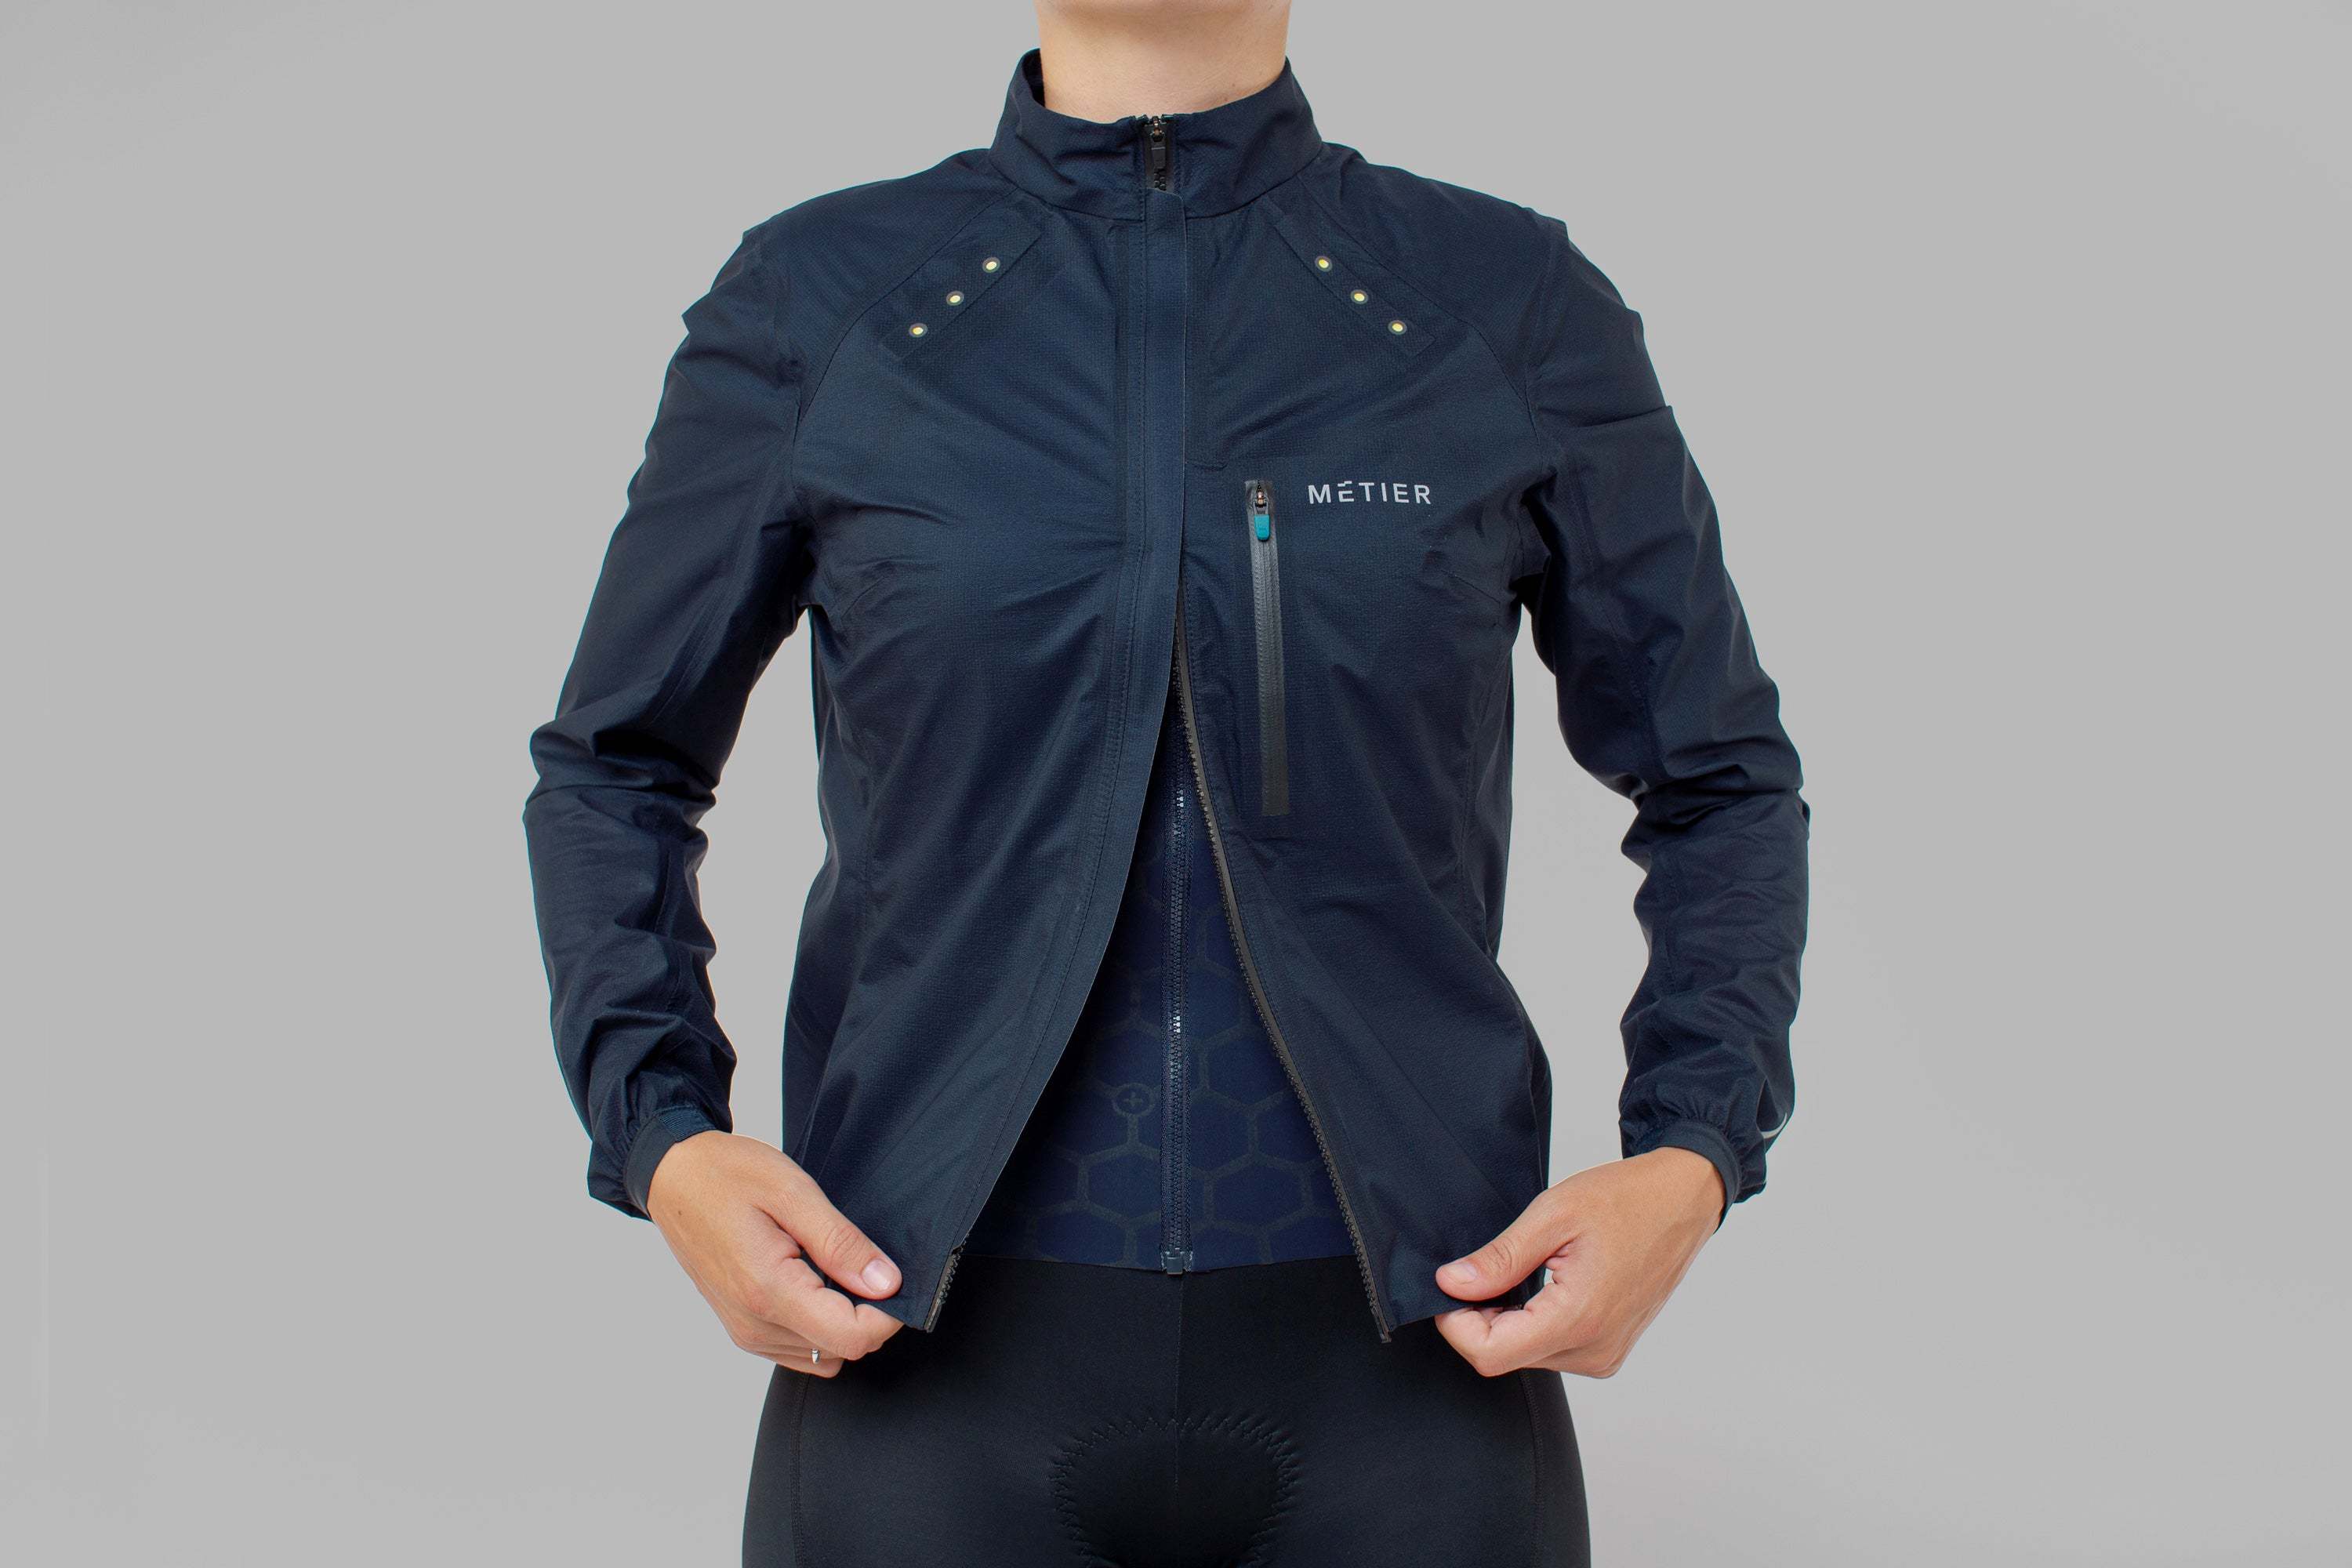 Overheating will impact your performance as energy is directed away from the muscles. The stretch nylon fabric of the Beacon Rain Jacket is highly breathable and works to regulate your core body temperature, meaning you'll stay comfortable and dry even when riding hard.